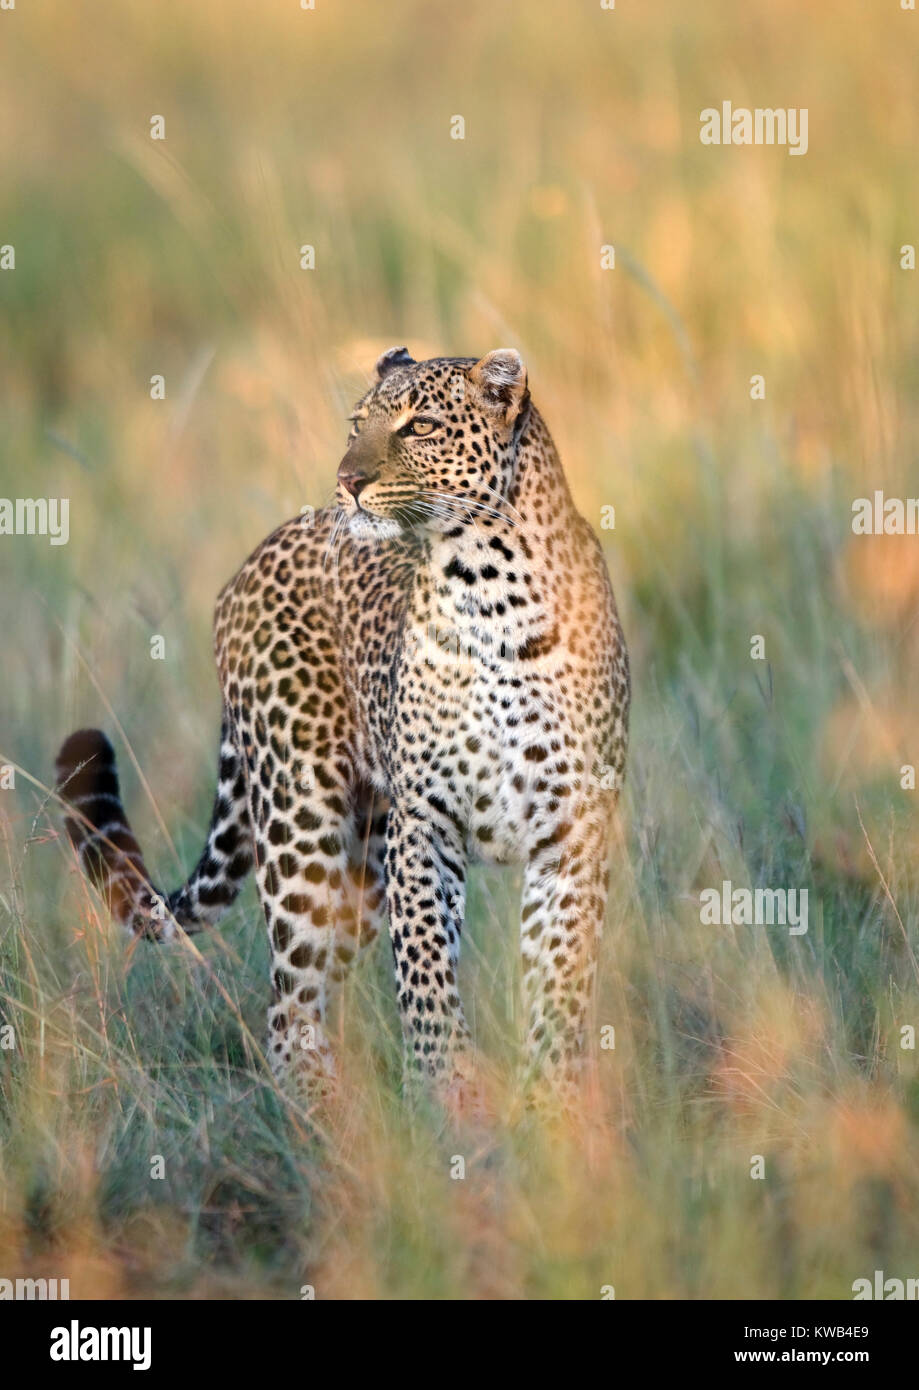 African Leopard - Stock Image